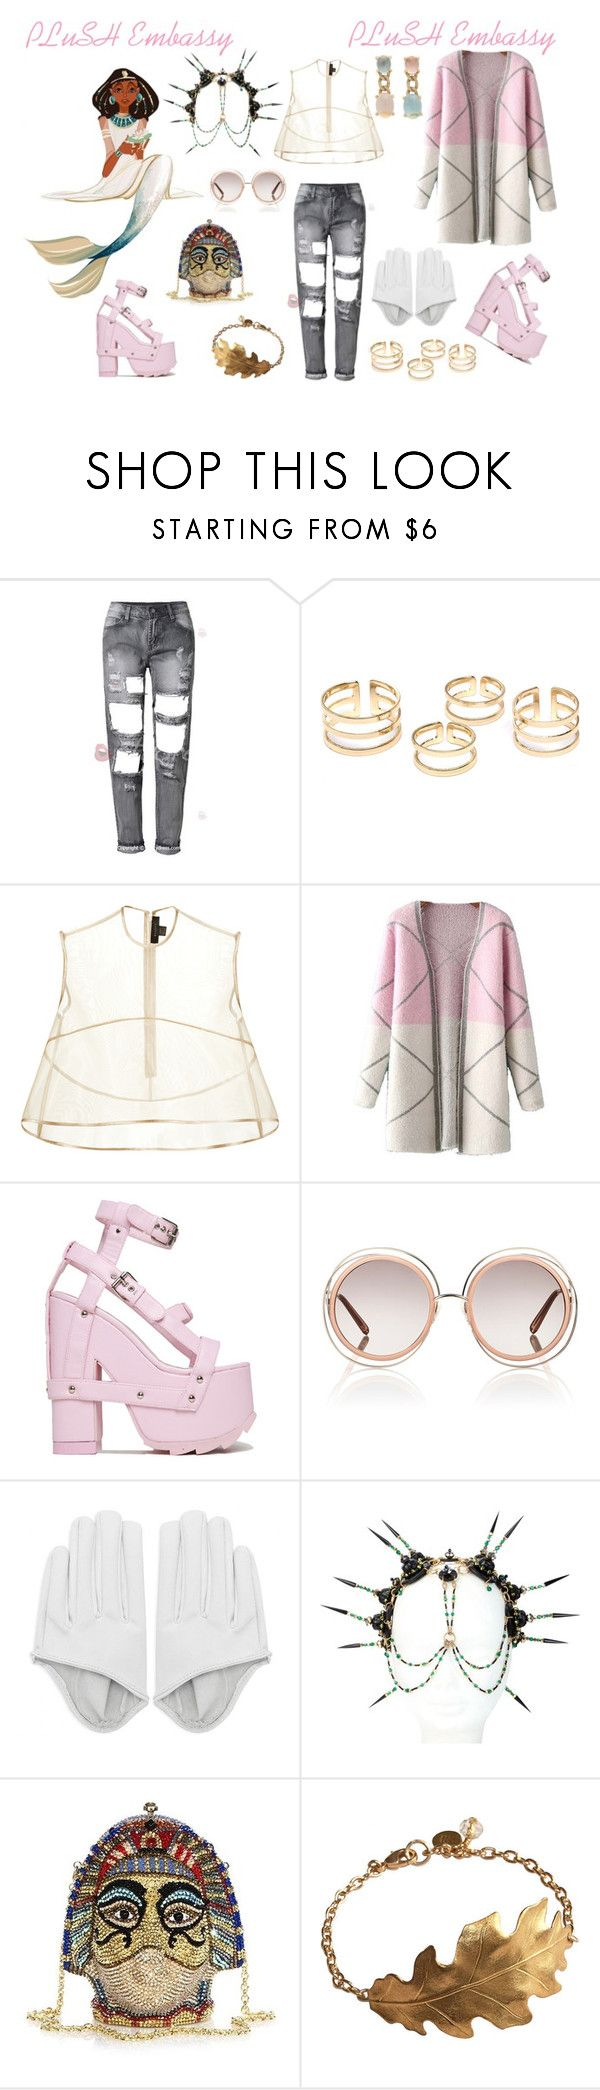 """PLuSH On Fleek"" by plushempress ❤ liked on Polyvore featuring E L L E R Y, Chicnova Fashion, Chloé, Manish Arora, Judith Leiber, Faraone Mennella by R.F.M.A.S., women's clothing, women's fashion, women and female"